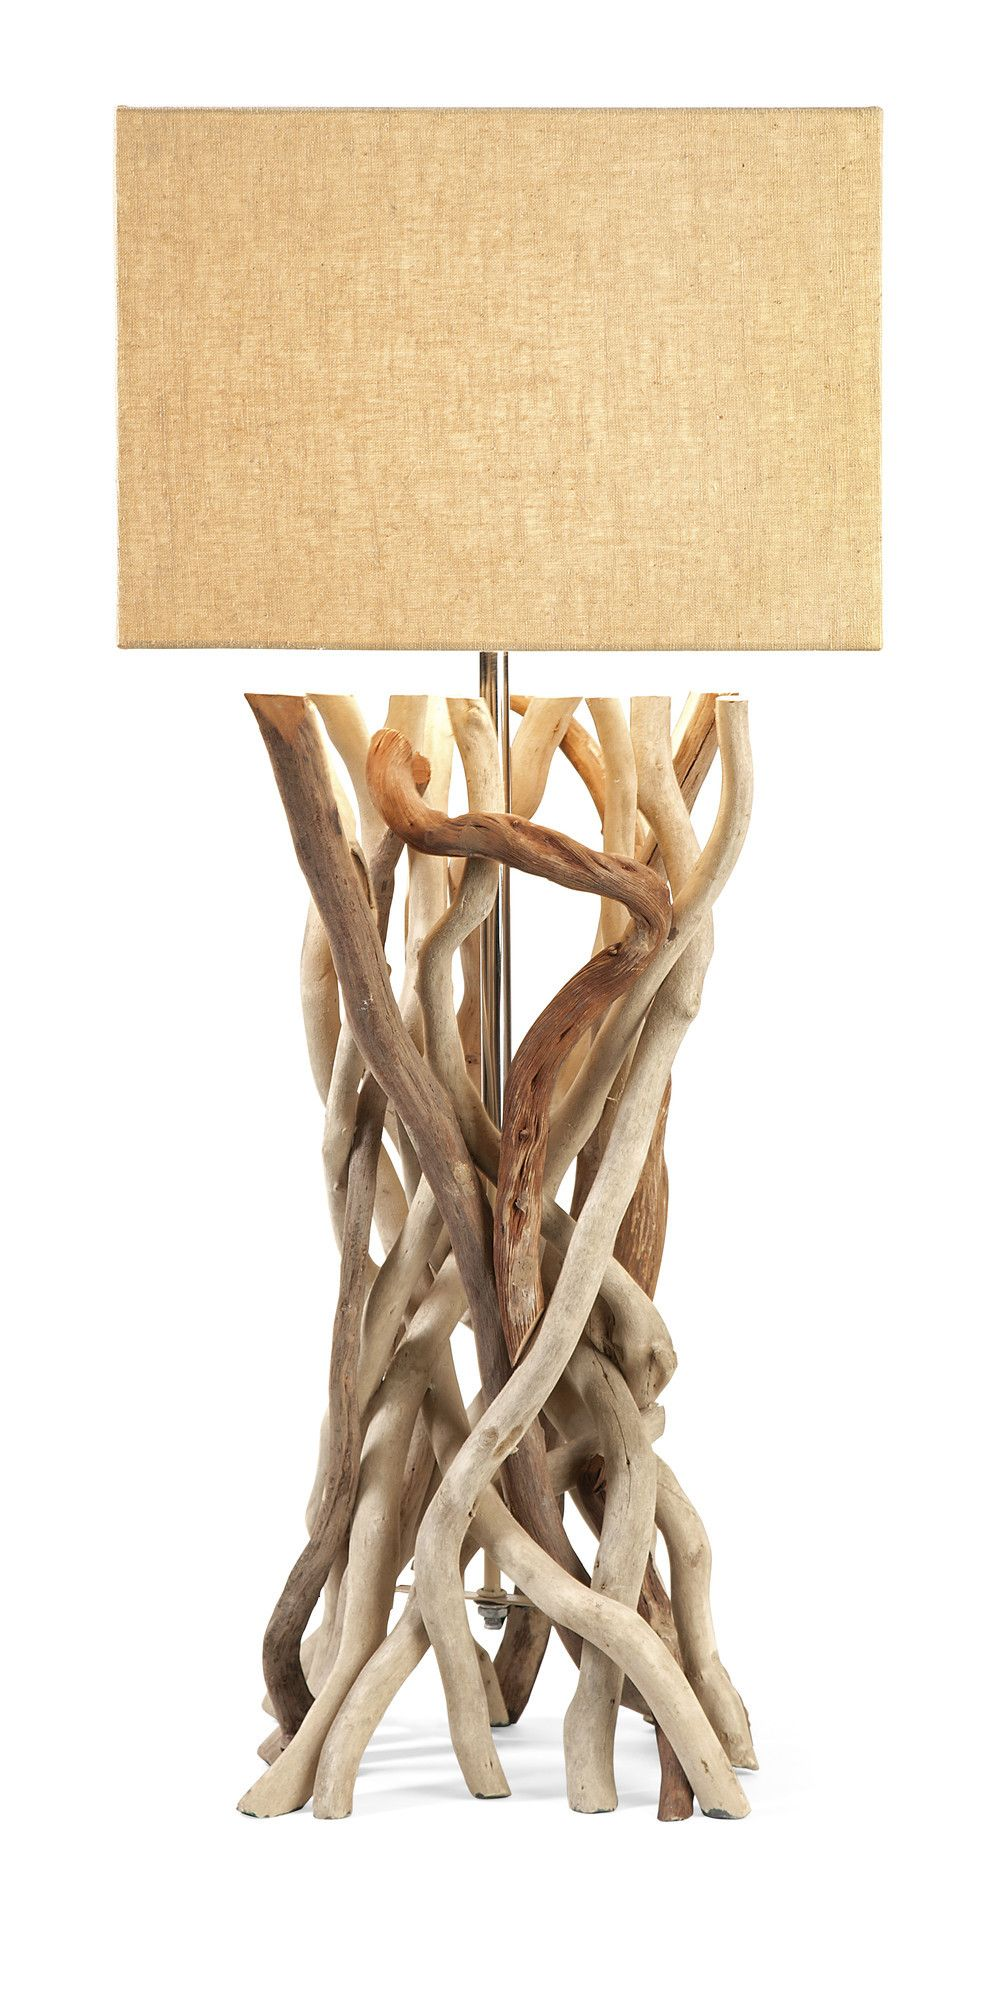 Explorer drift wood table lamp drift wood wood table and driftwood explorer drift wood table lamp geotapseo Choice Image